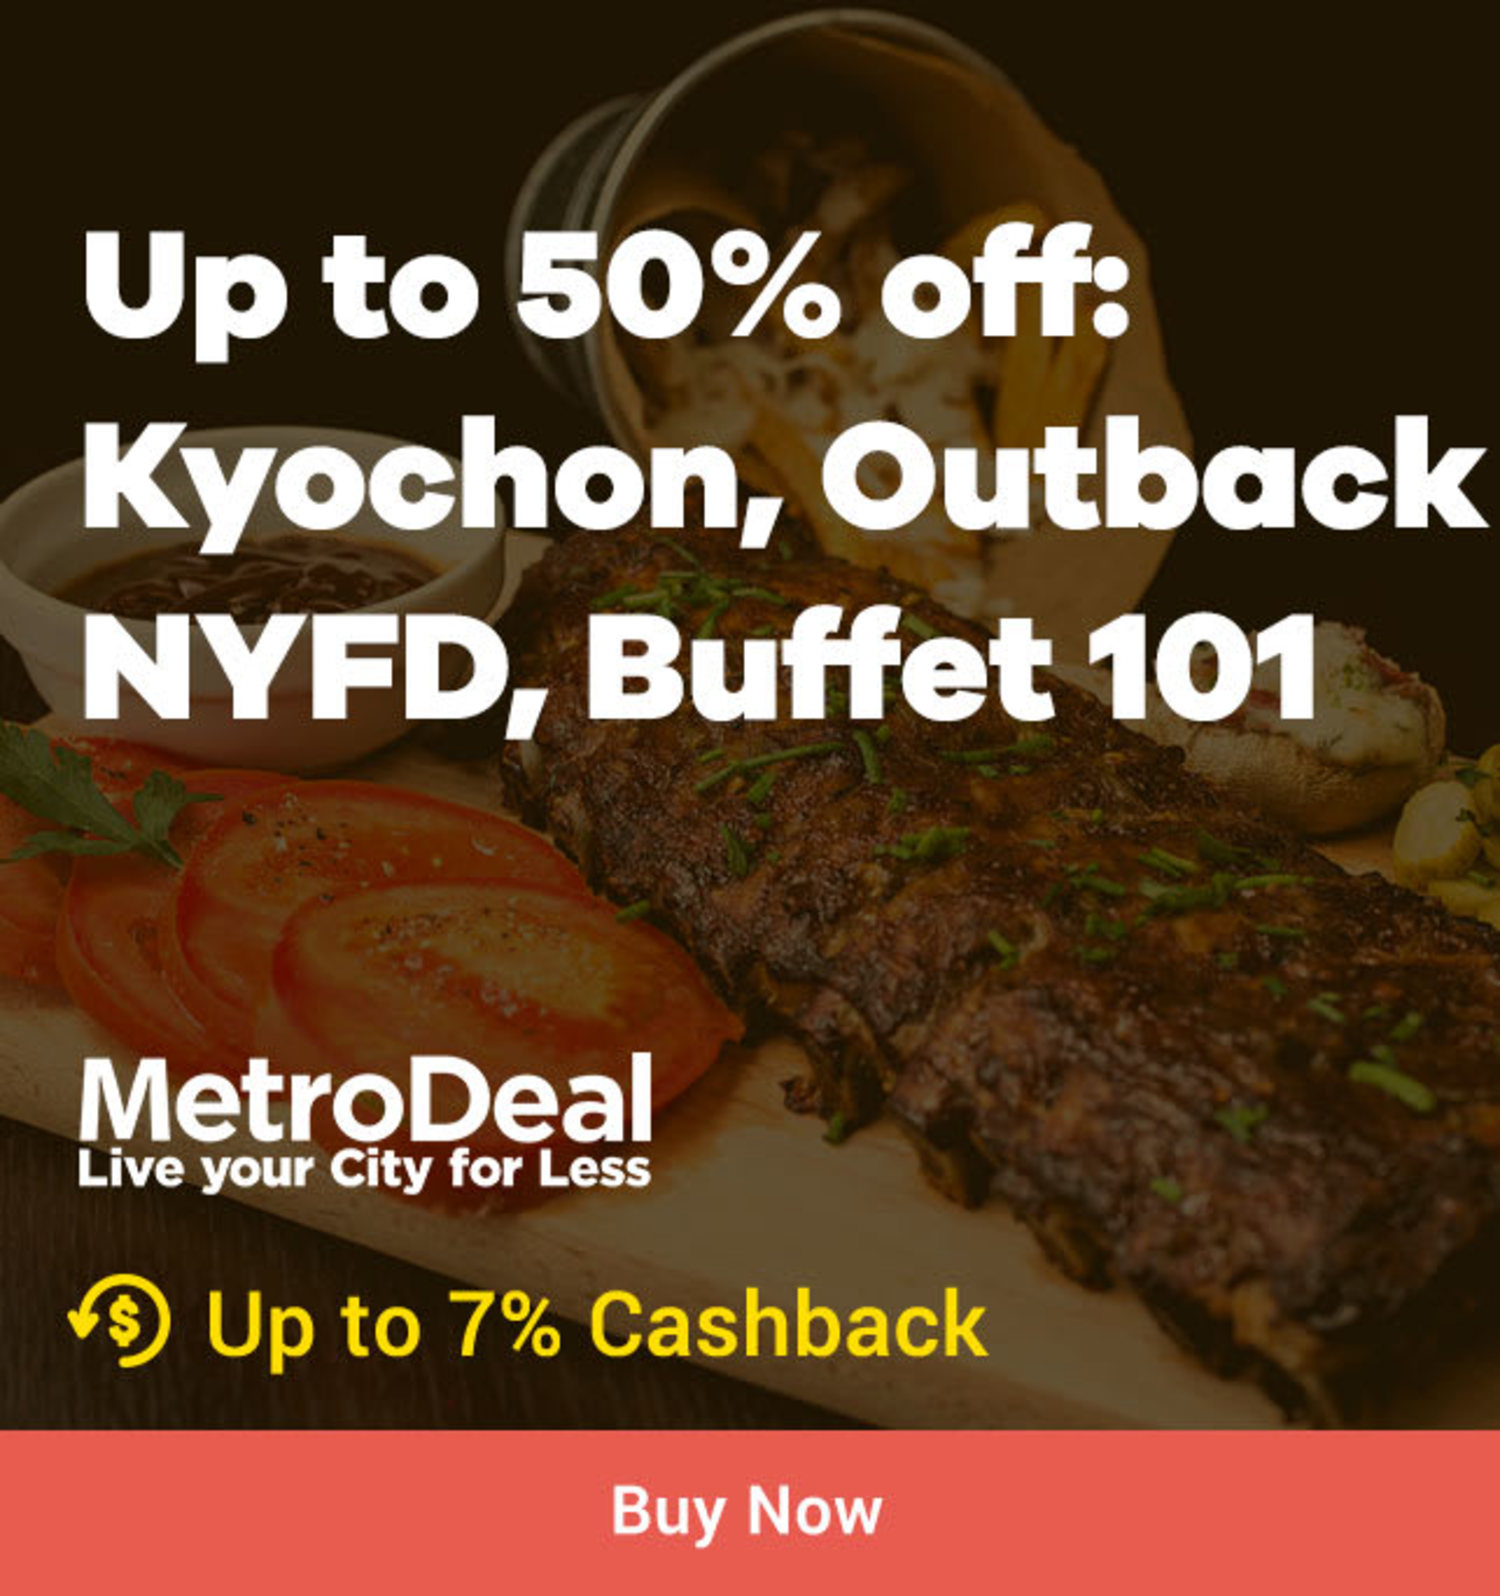 Metrodeal Up to 50% off: Kyochon, Outback, NYFD, Buffet 101 + Up to 7% Cashback